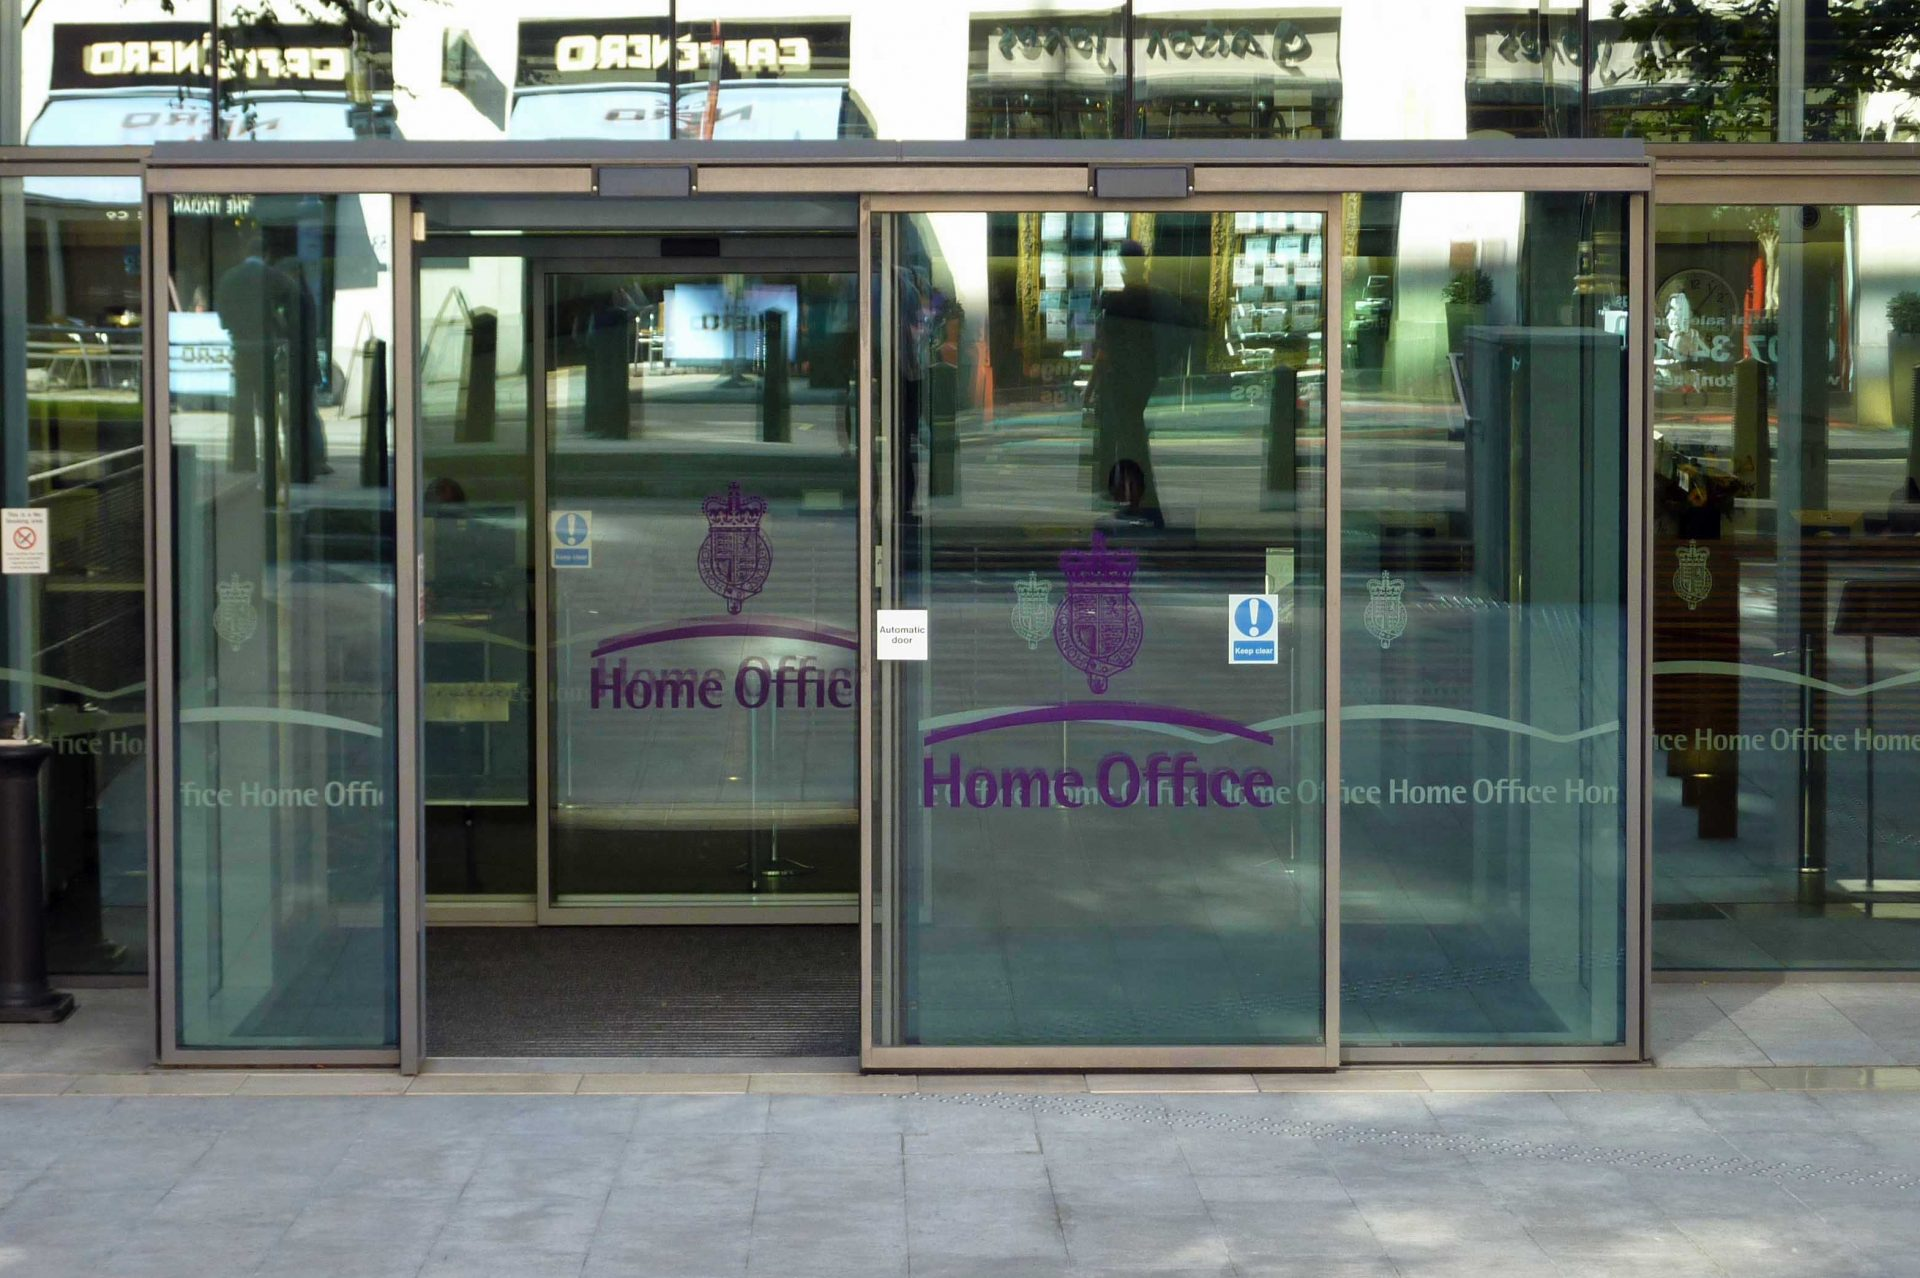 Image showing front doors of the UK Home Office building